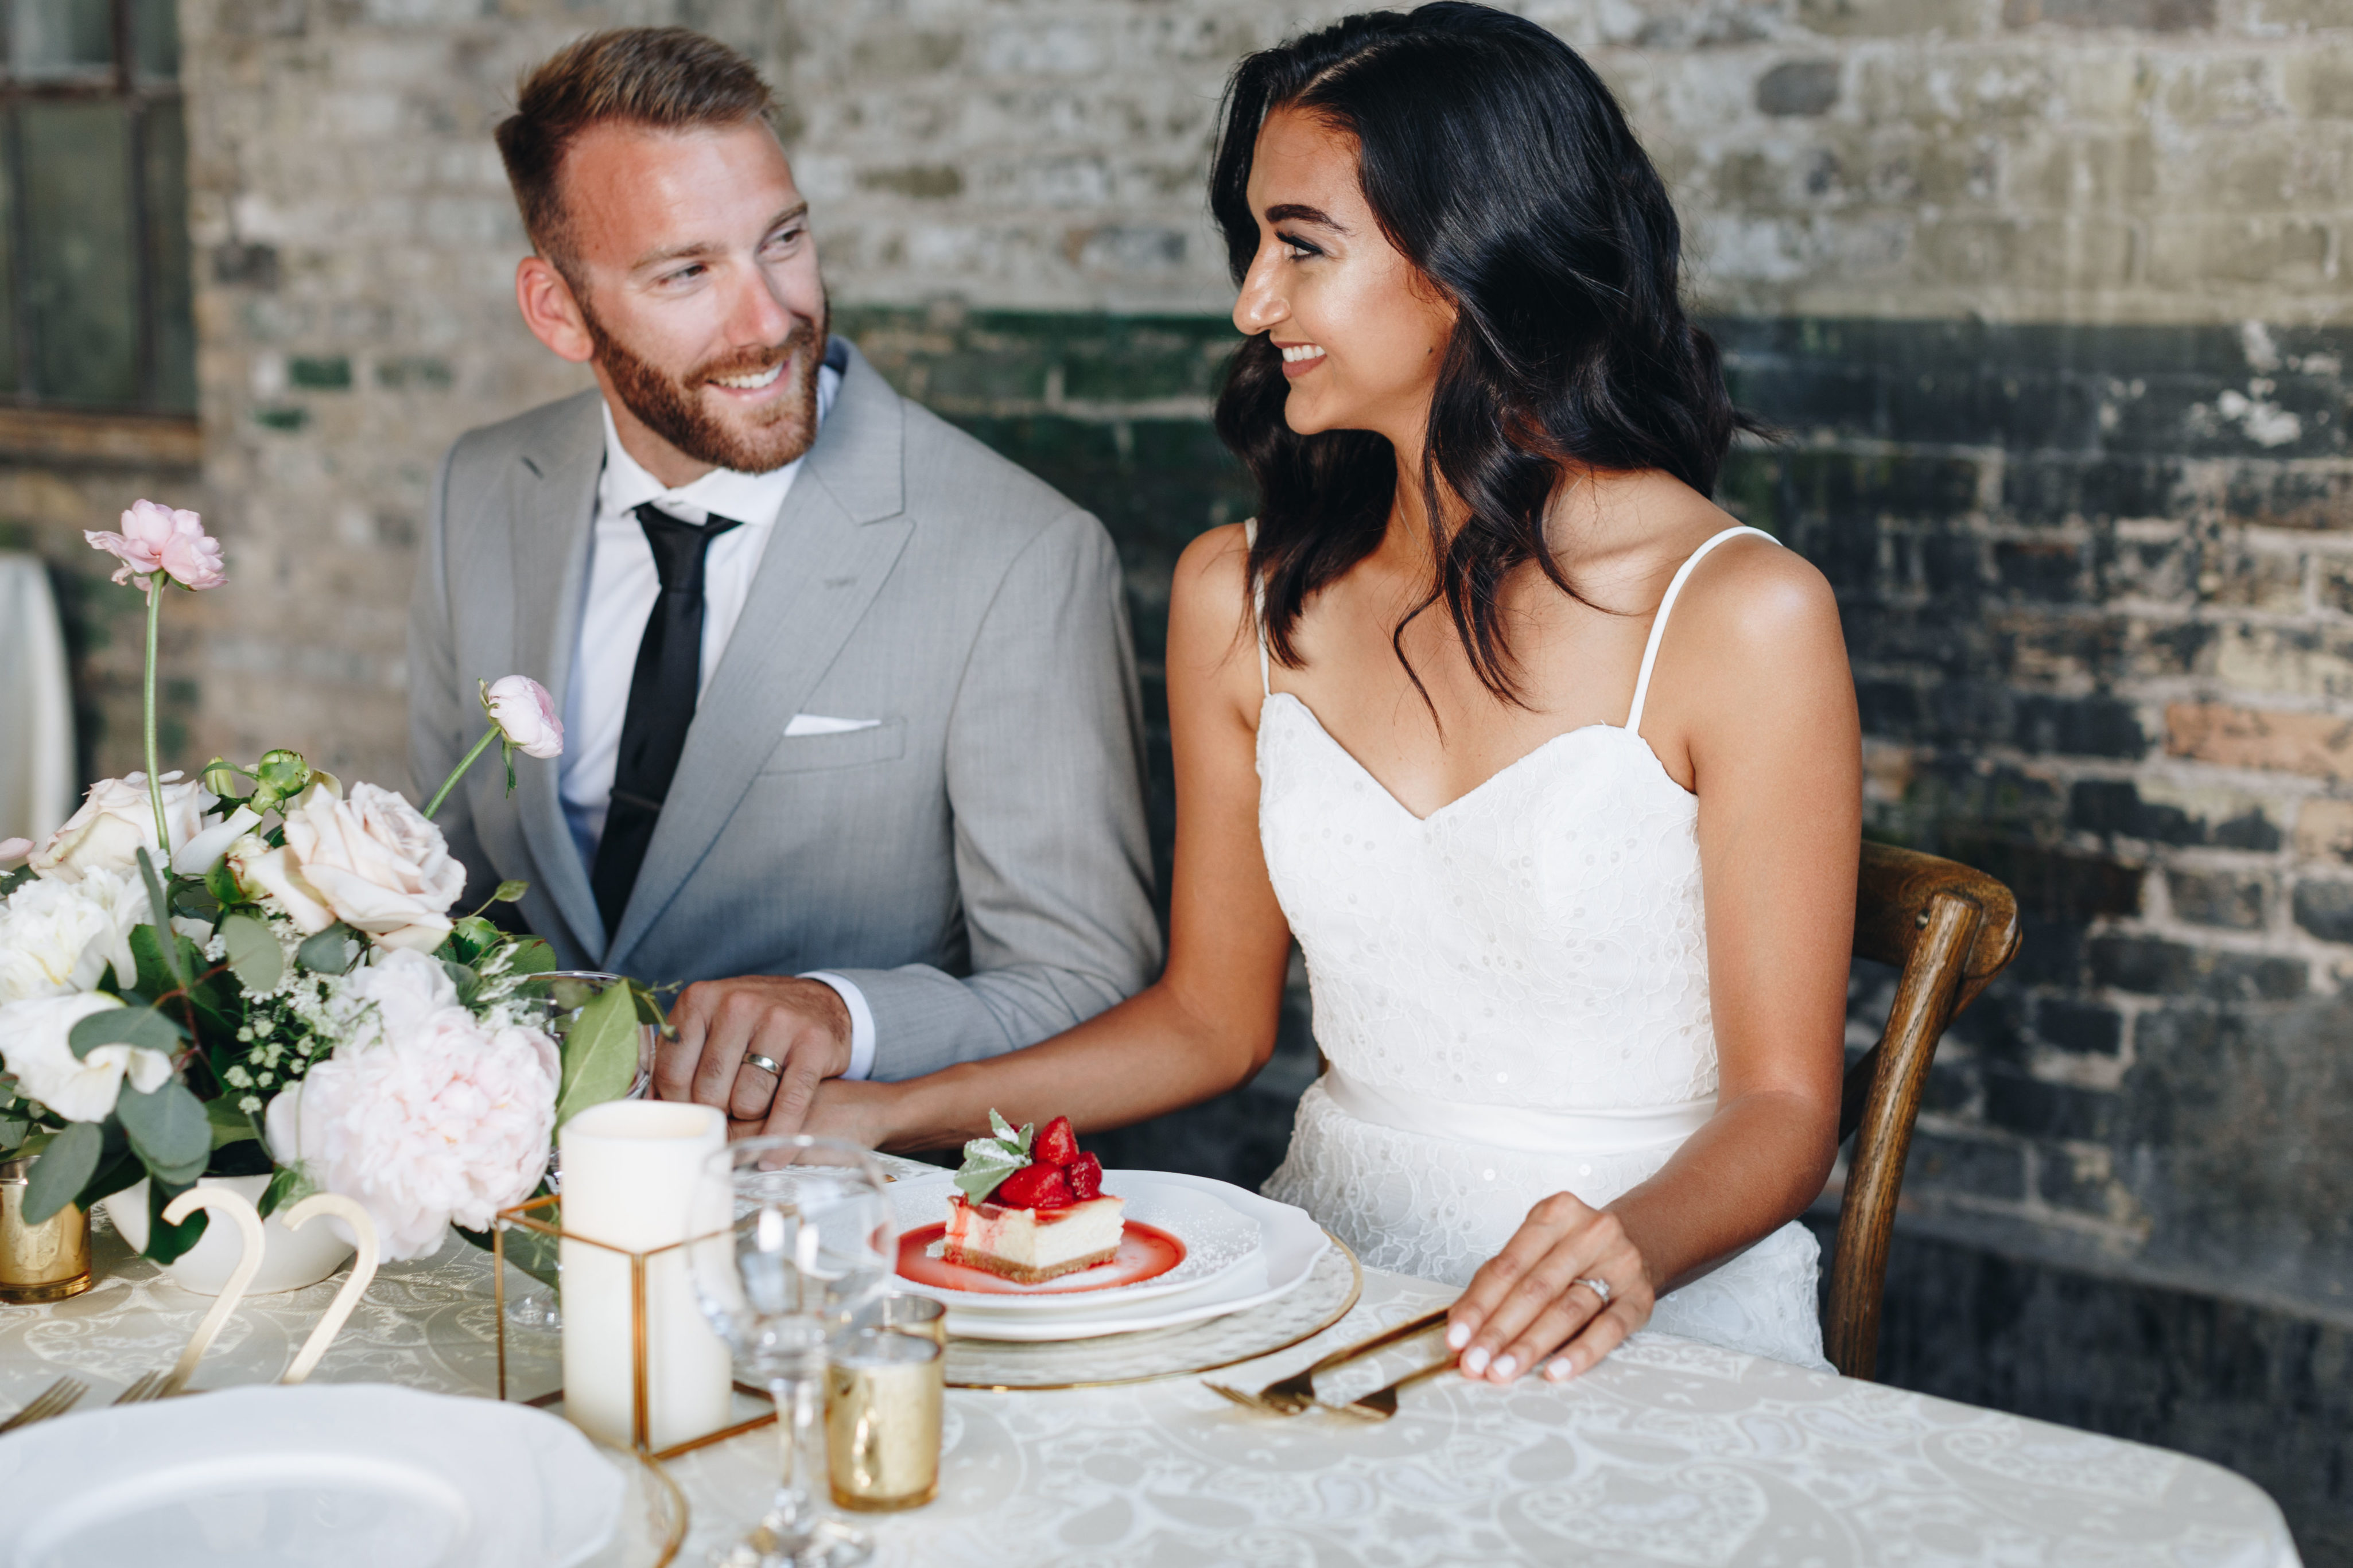 Bride and Groom sit with their dessert